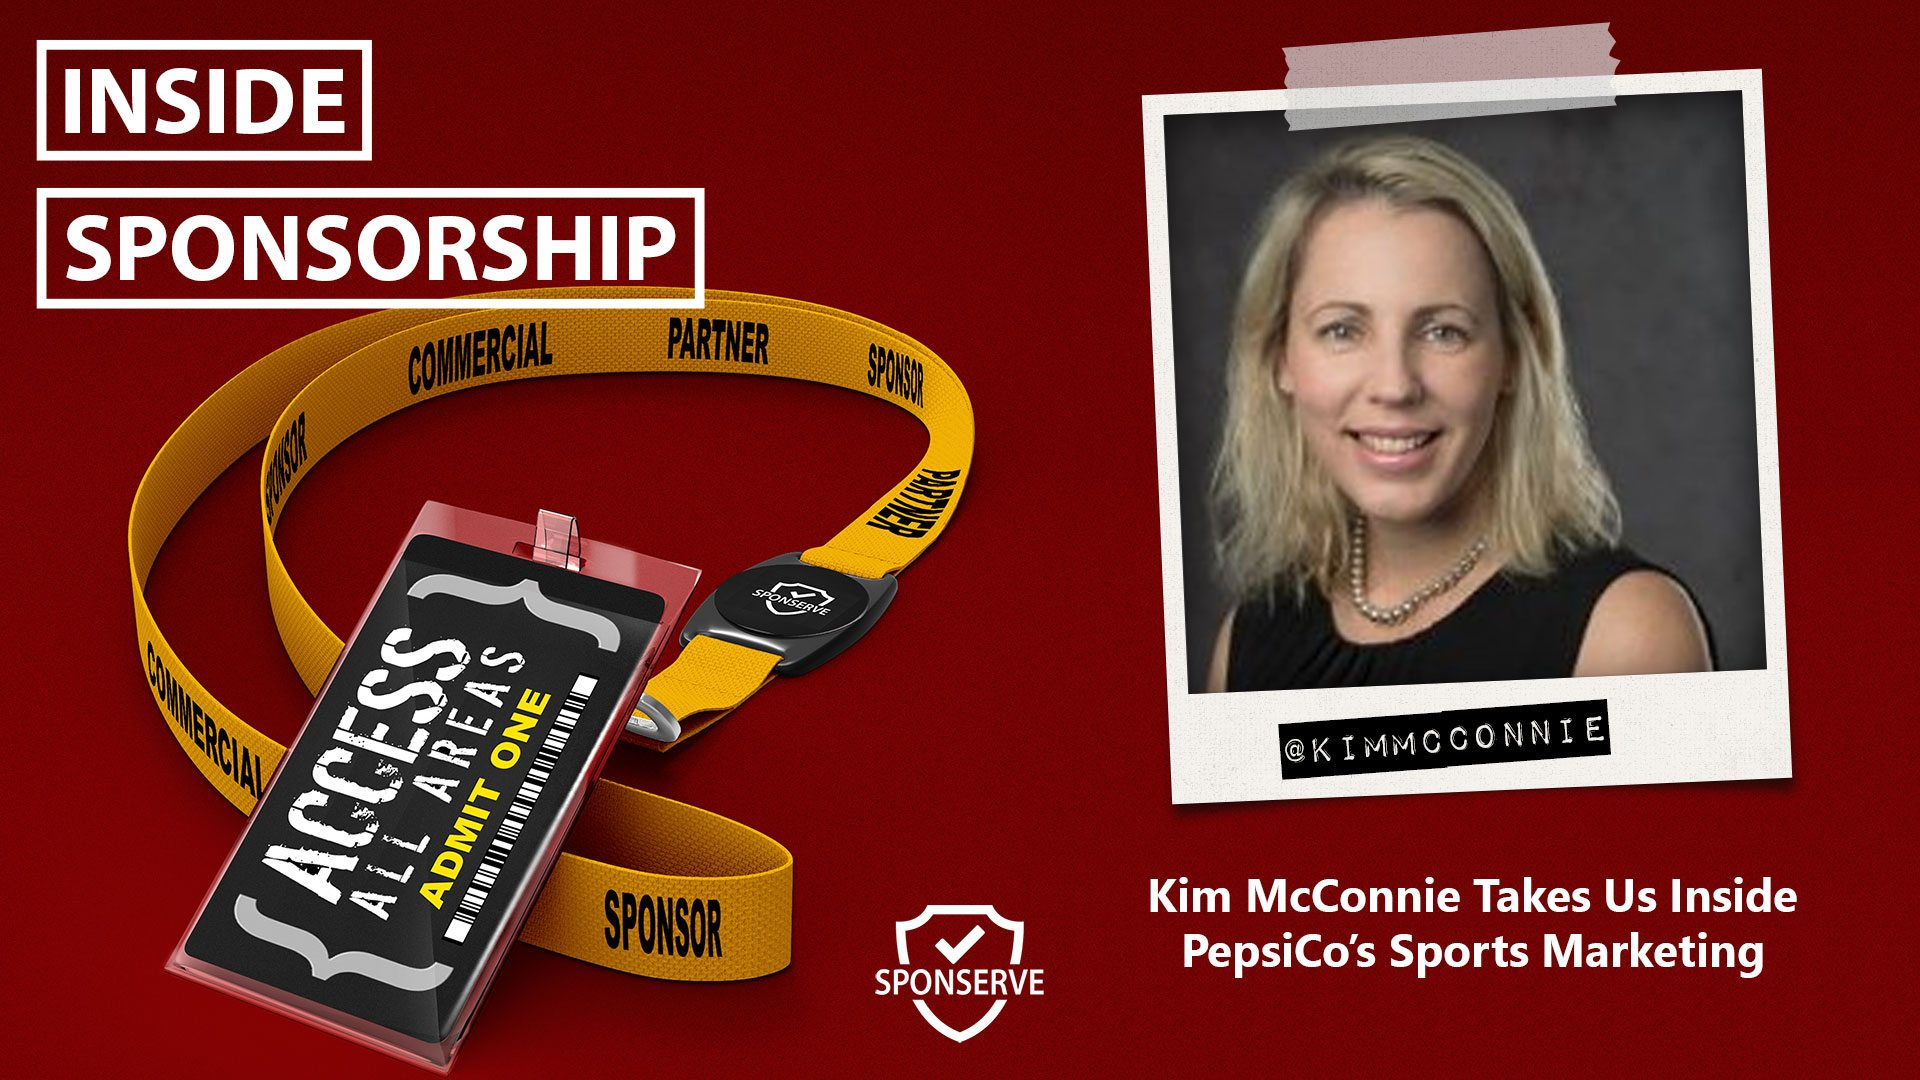 inside sponsorship kim mcconnie sports marketing at pepsico